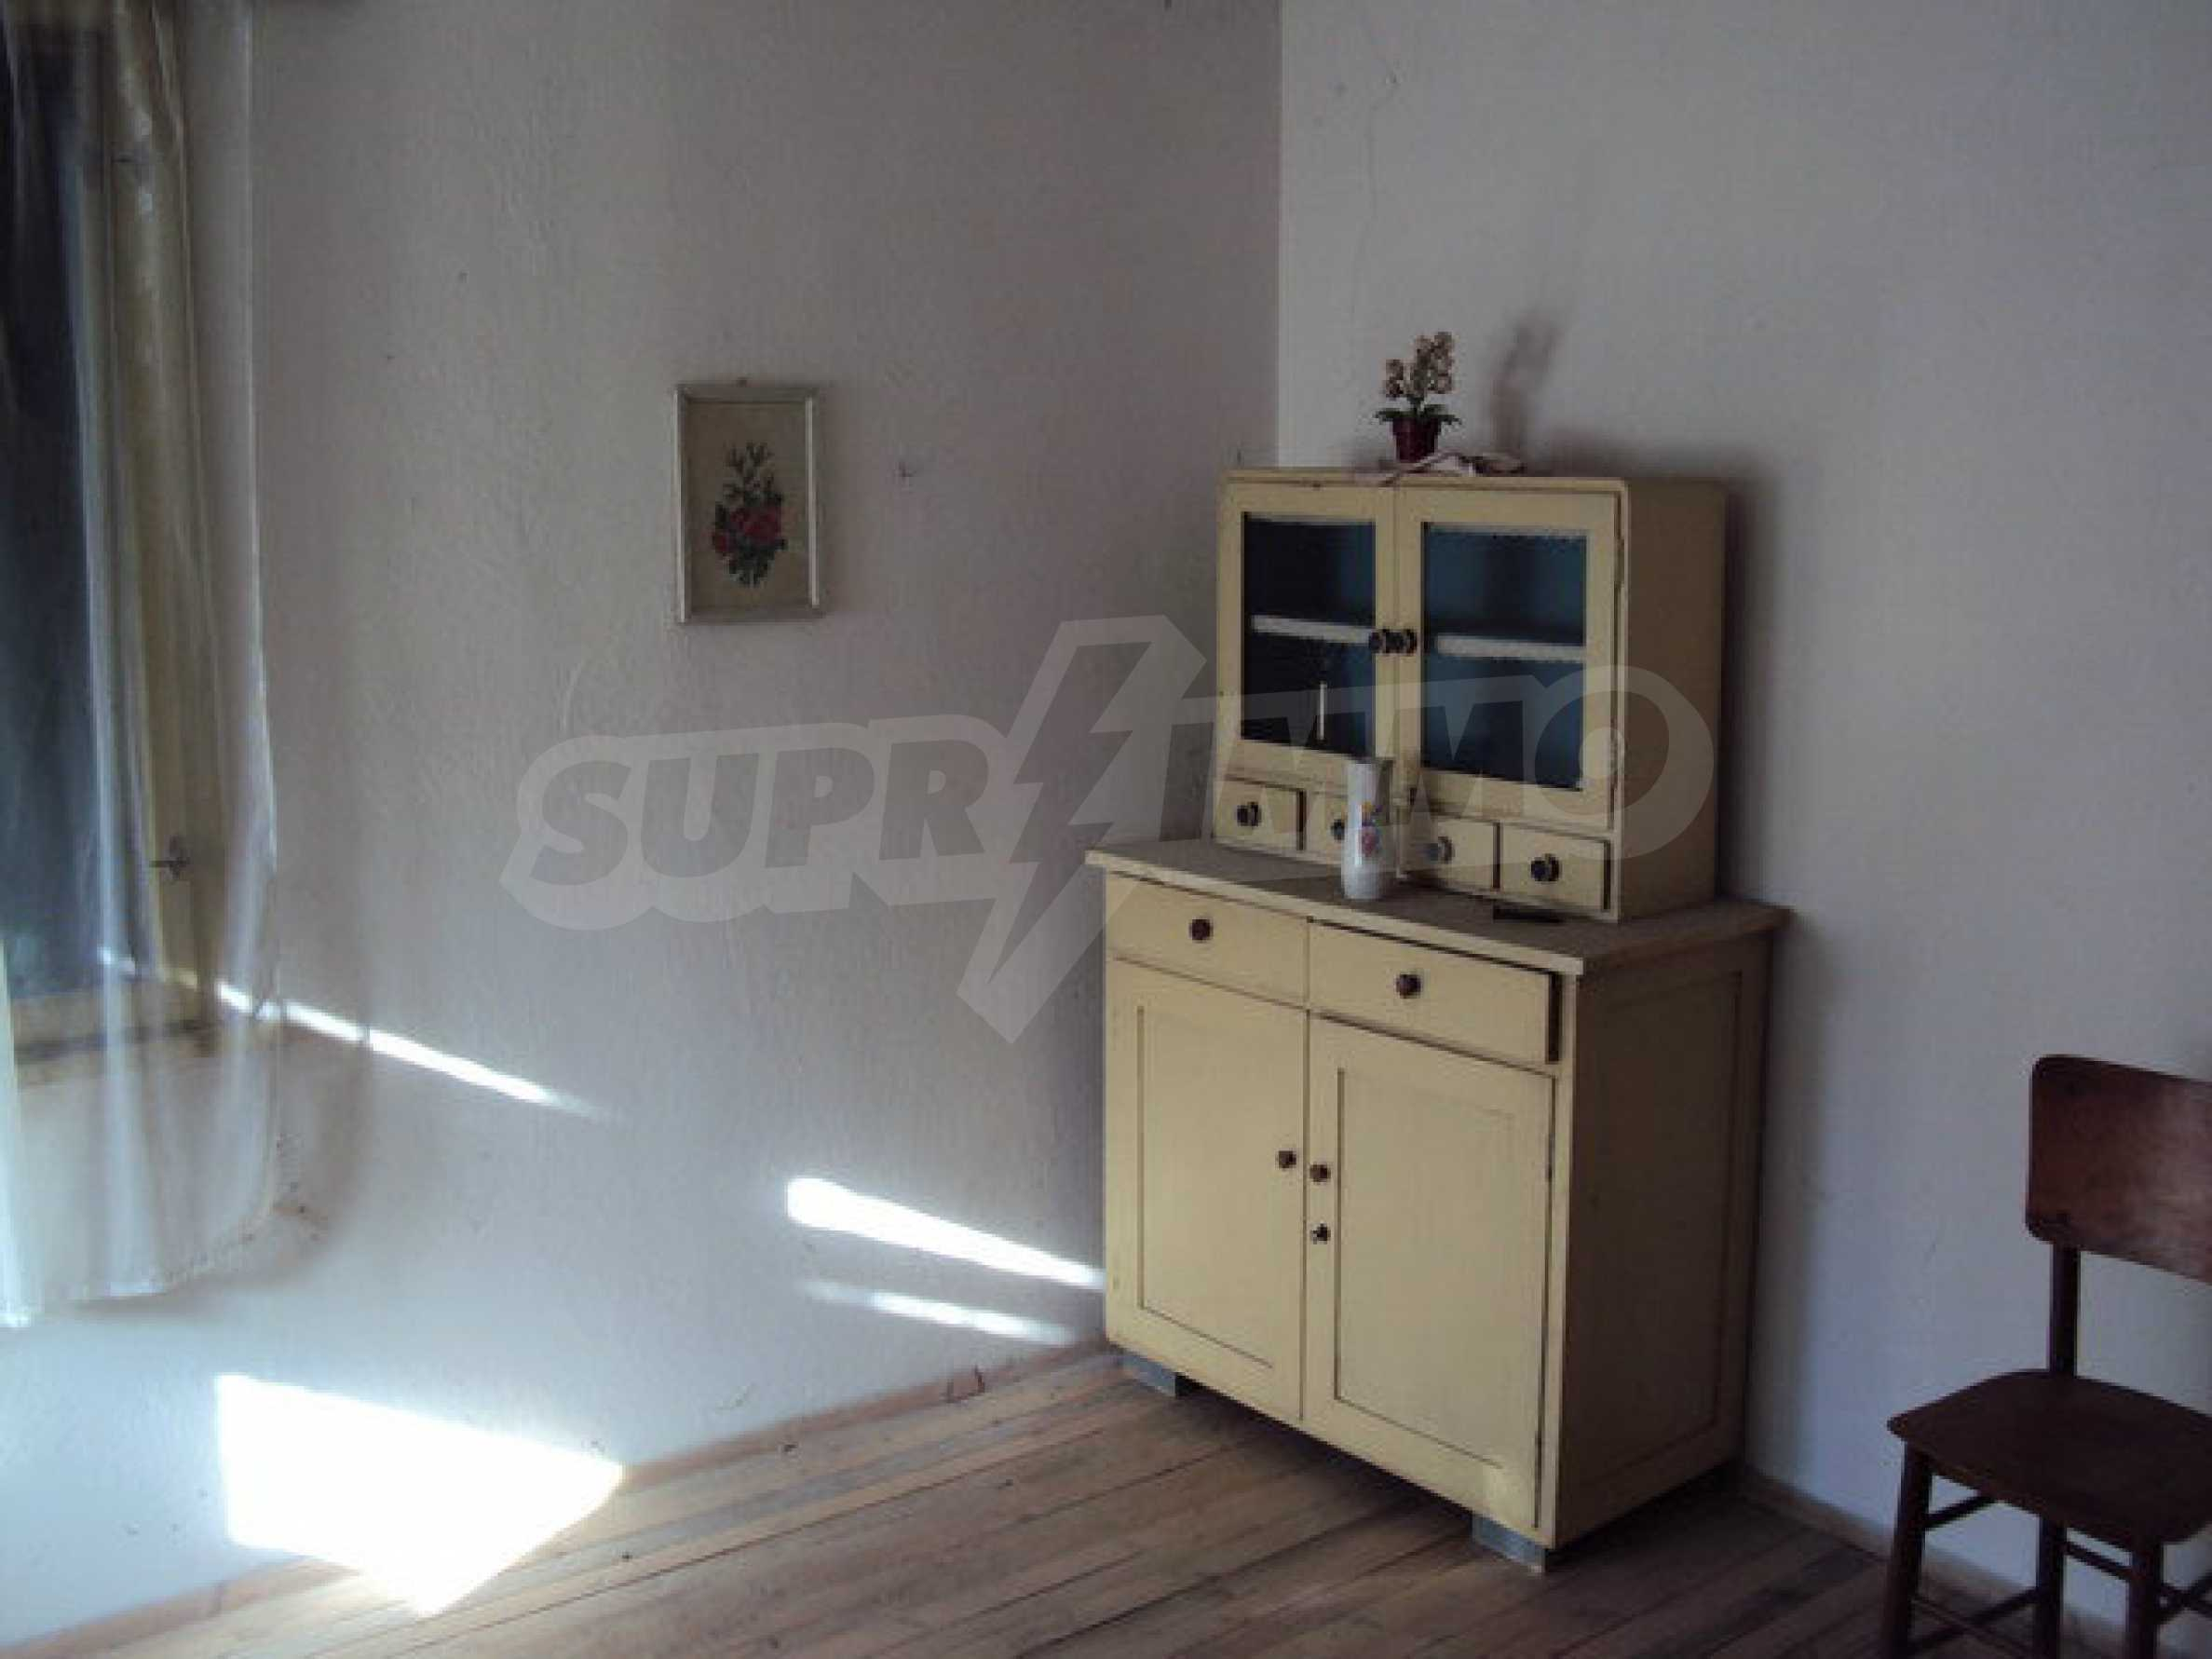 Spacious house in excellent condition in a village 25 km. the old capital of Veliko Tarnovo 35